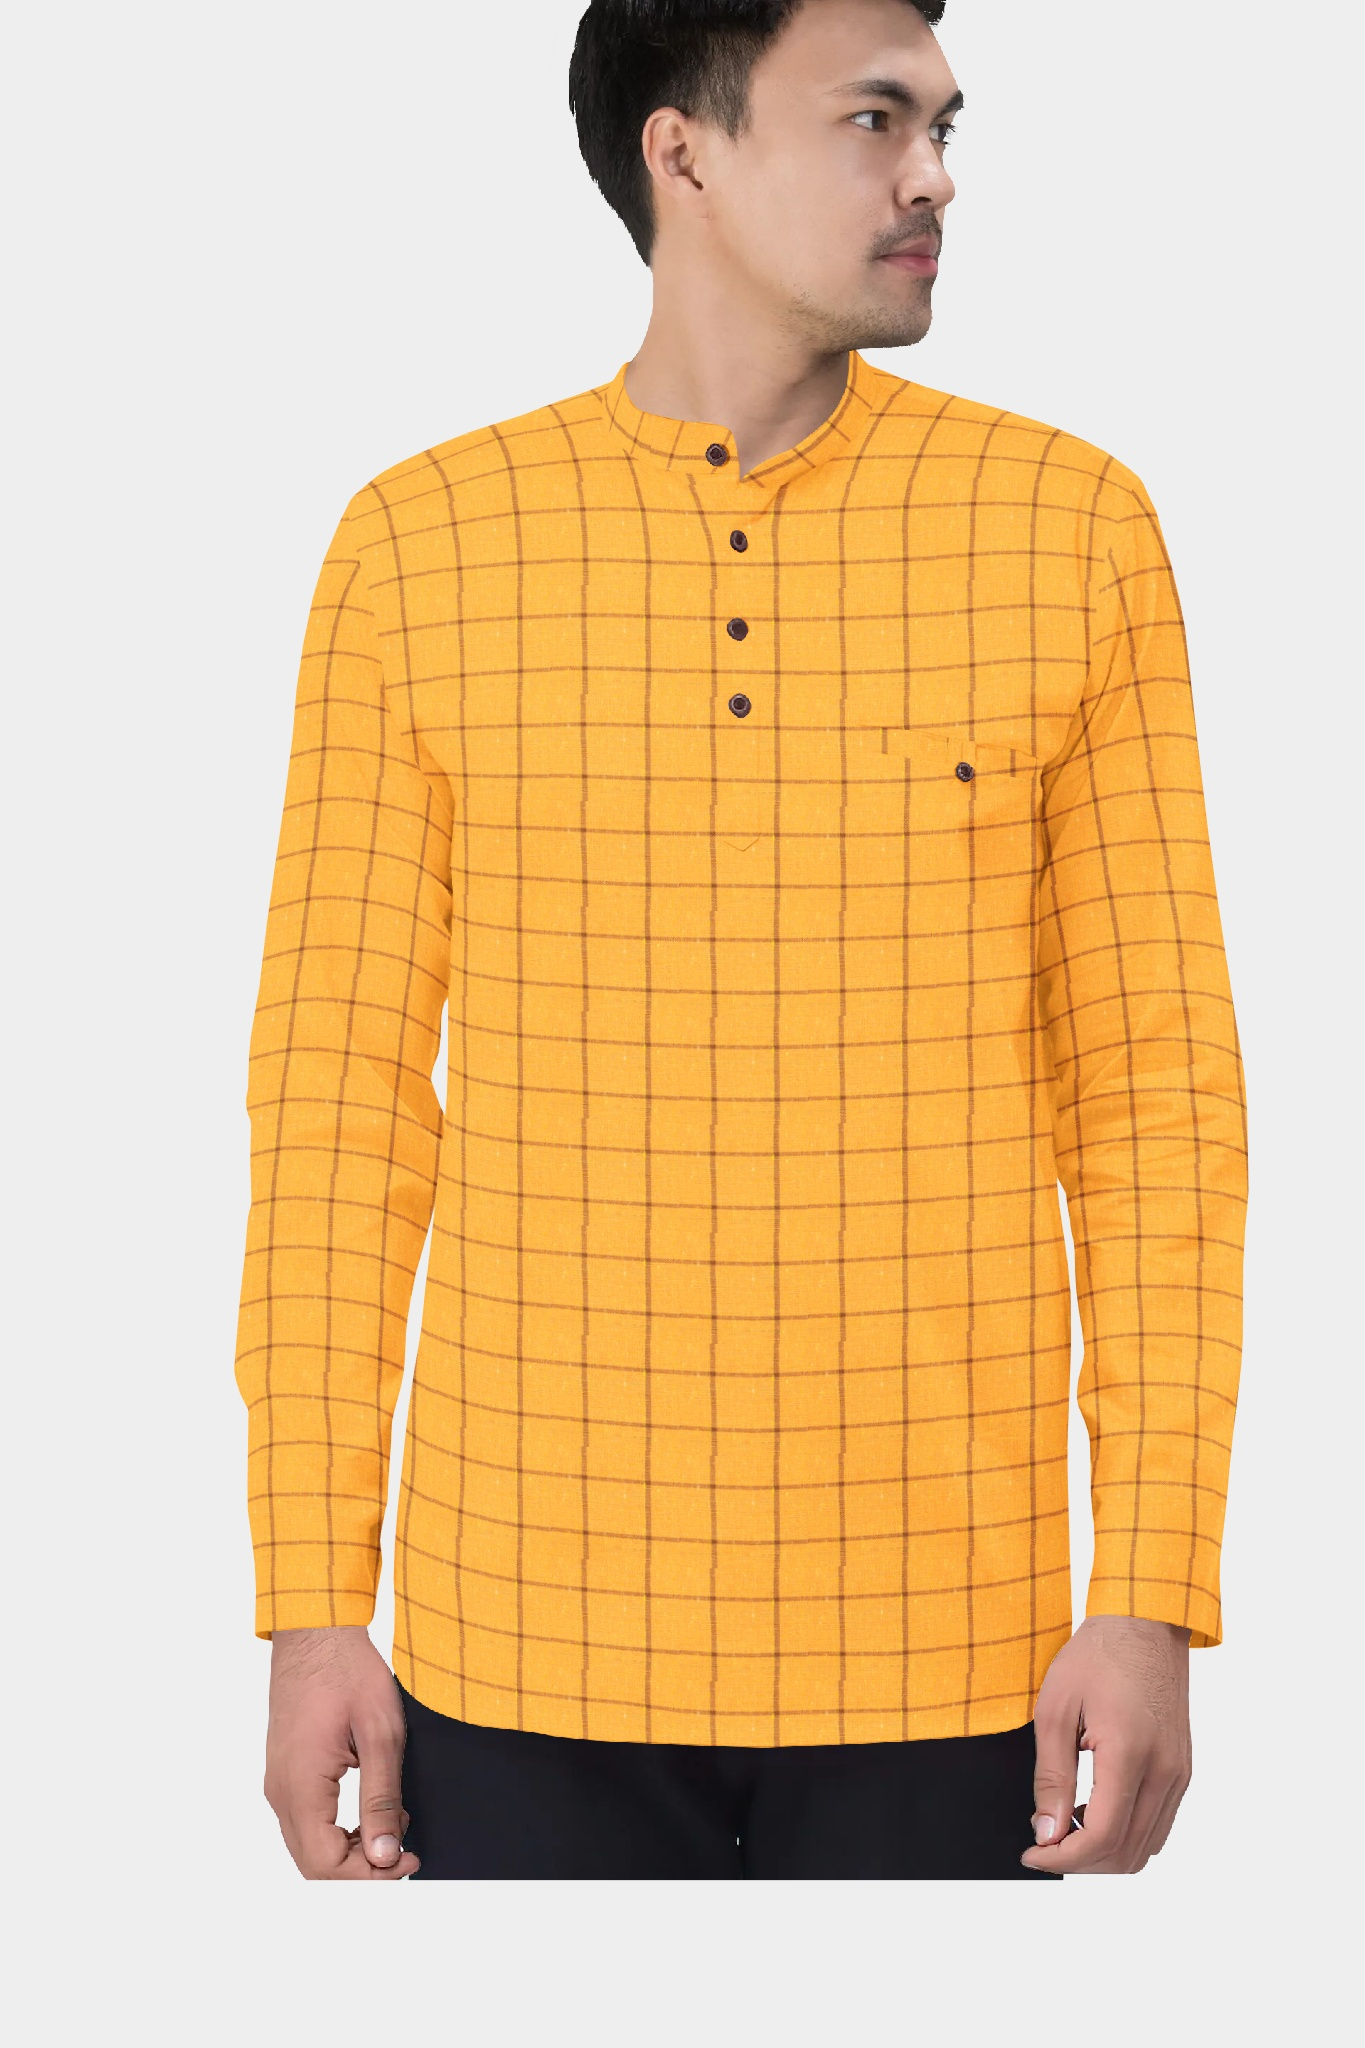 /home/customer/www/fabartcraft.com/public_html/uploadshttps://www.shopolics.com/uploads/images/medium/Yellow-Maroon-Cotton-Short-Kurta-35458.jpg